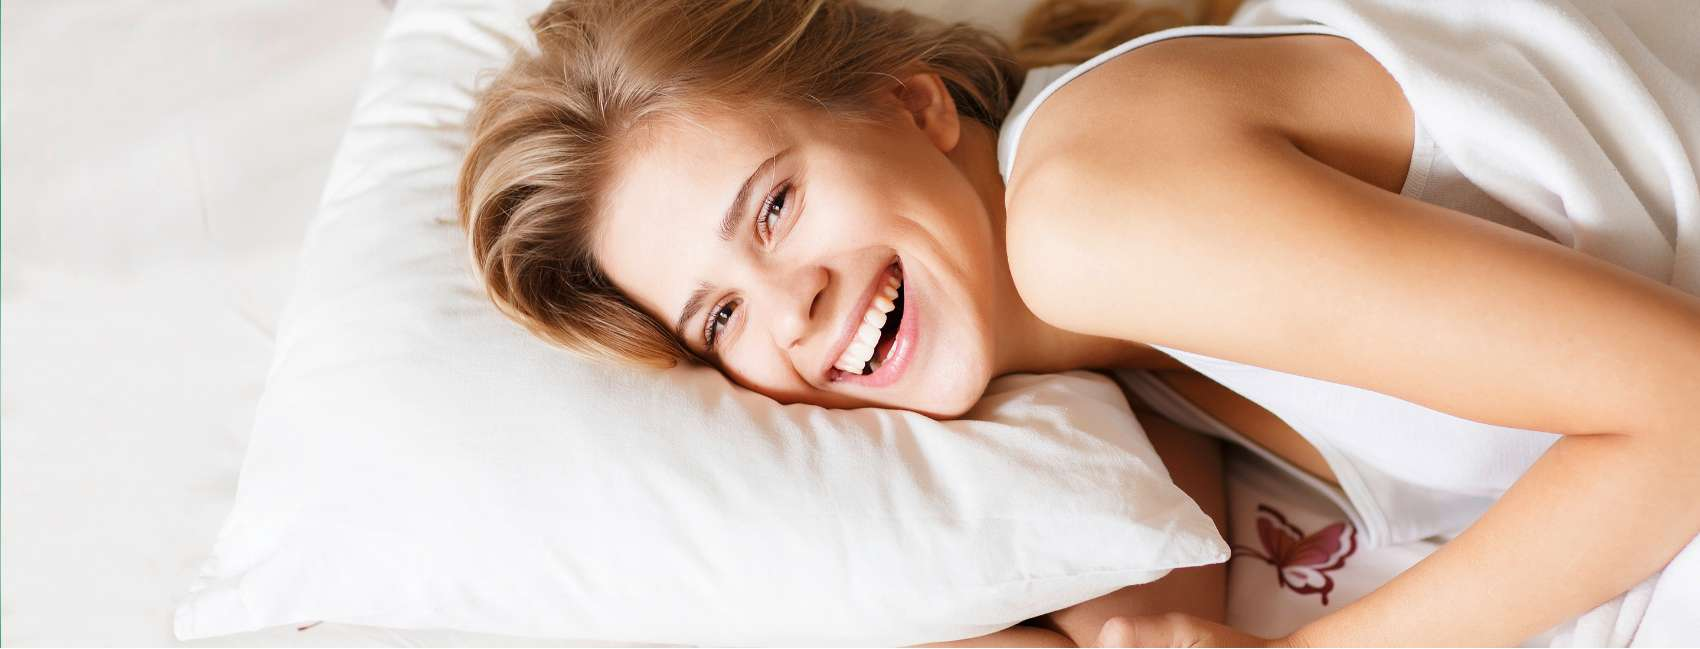 Smiling woman who looks rested is lying in bed